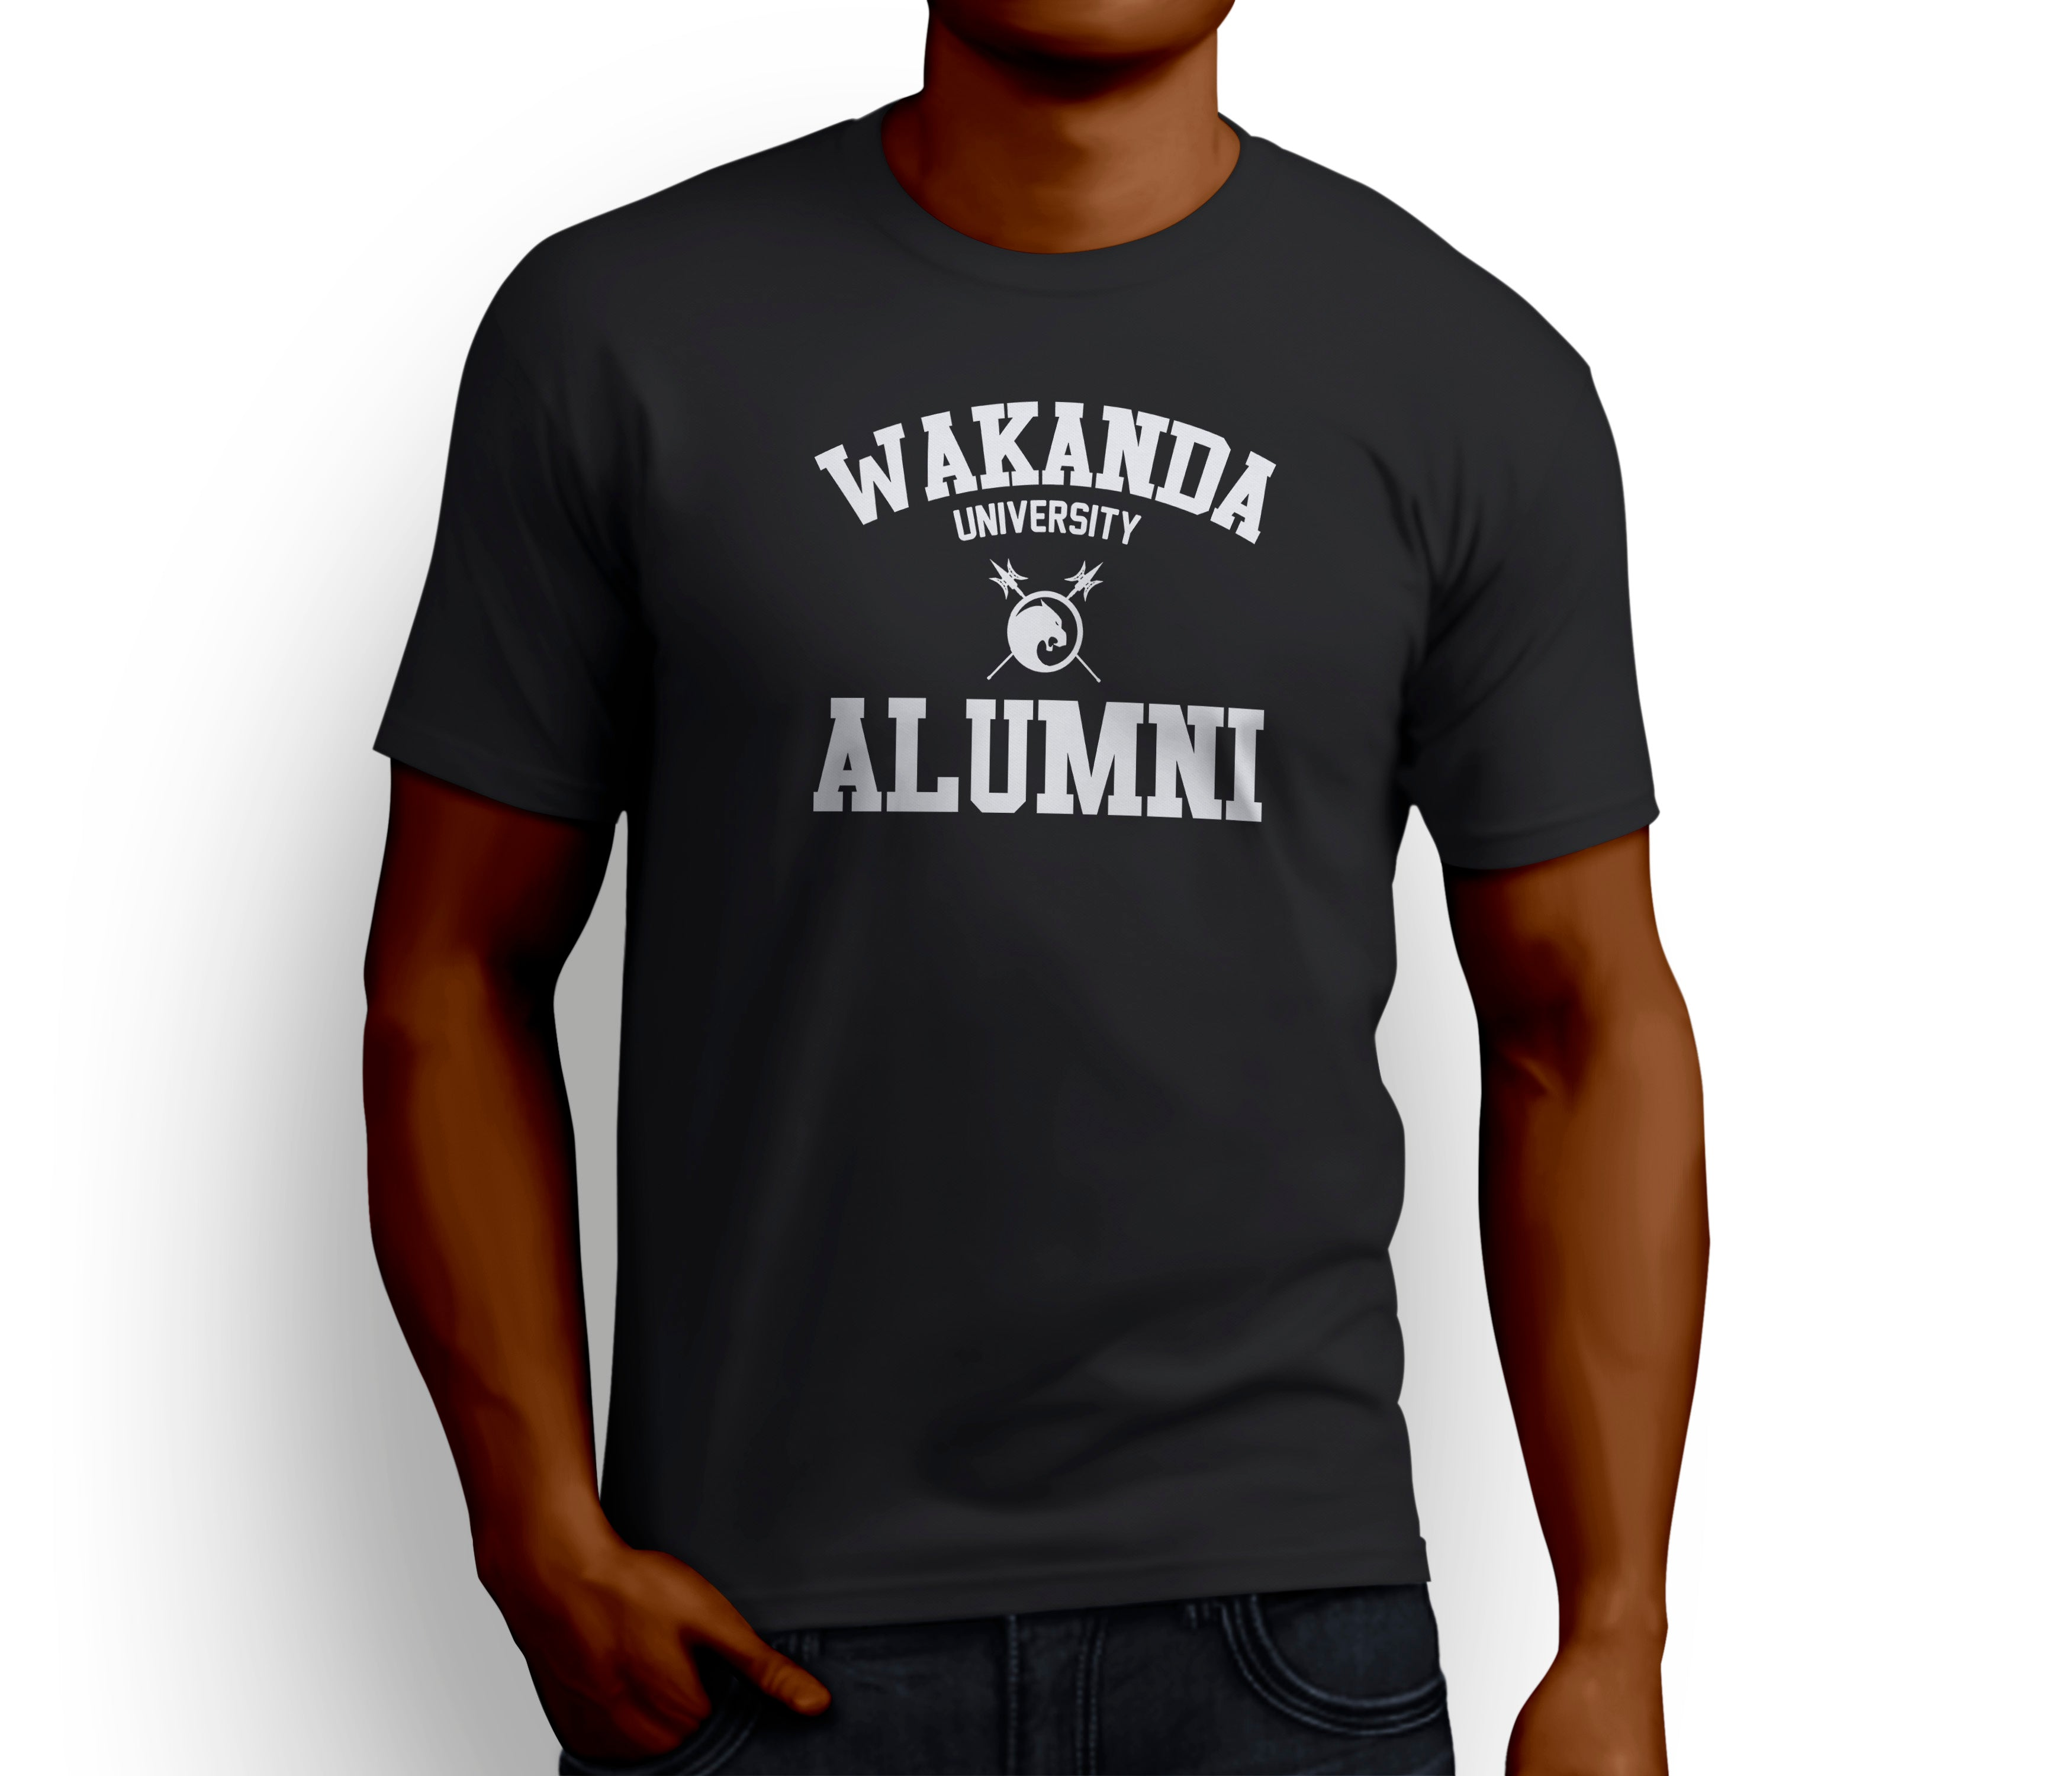 Wakanda University Alumni